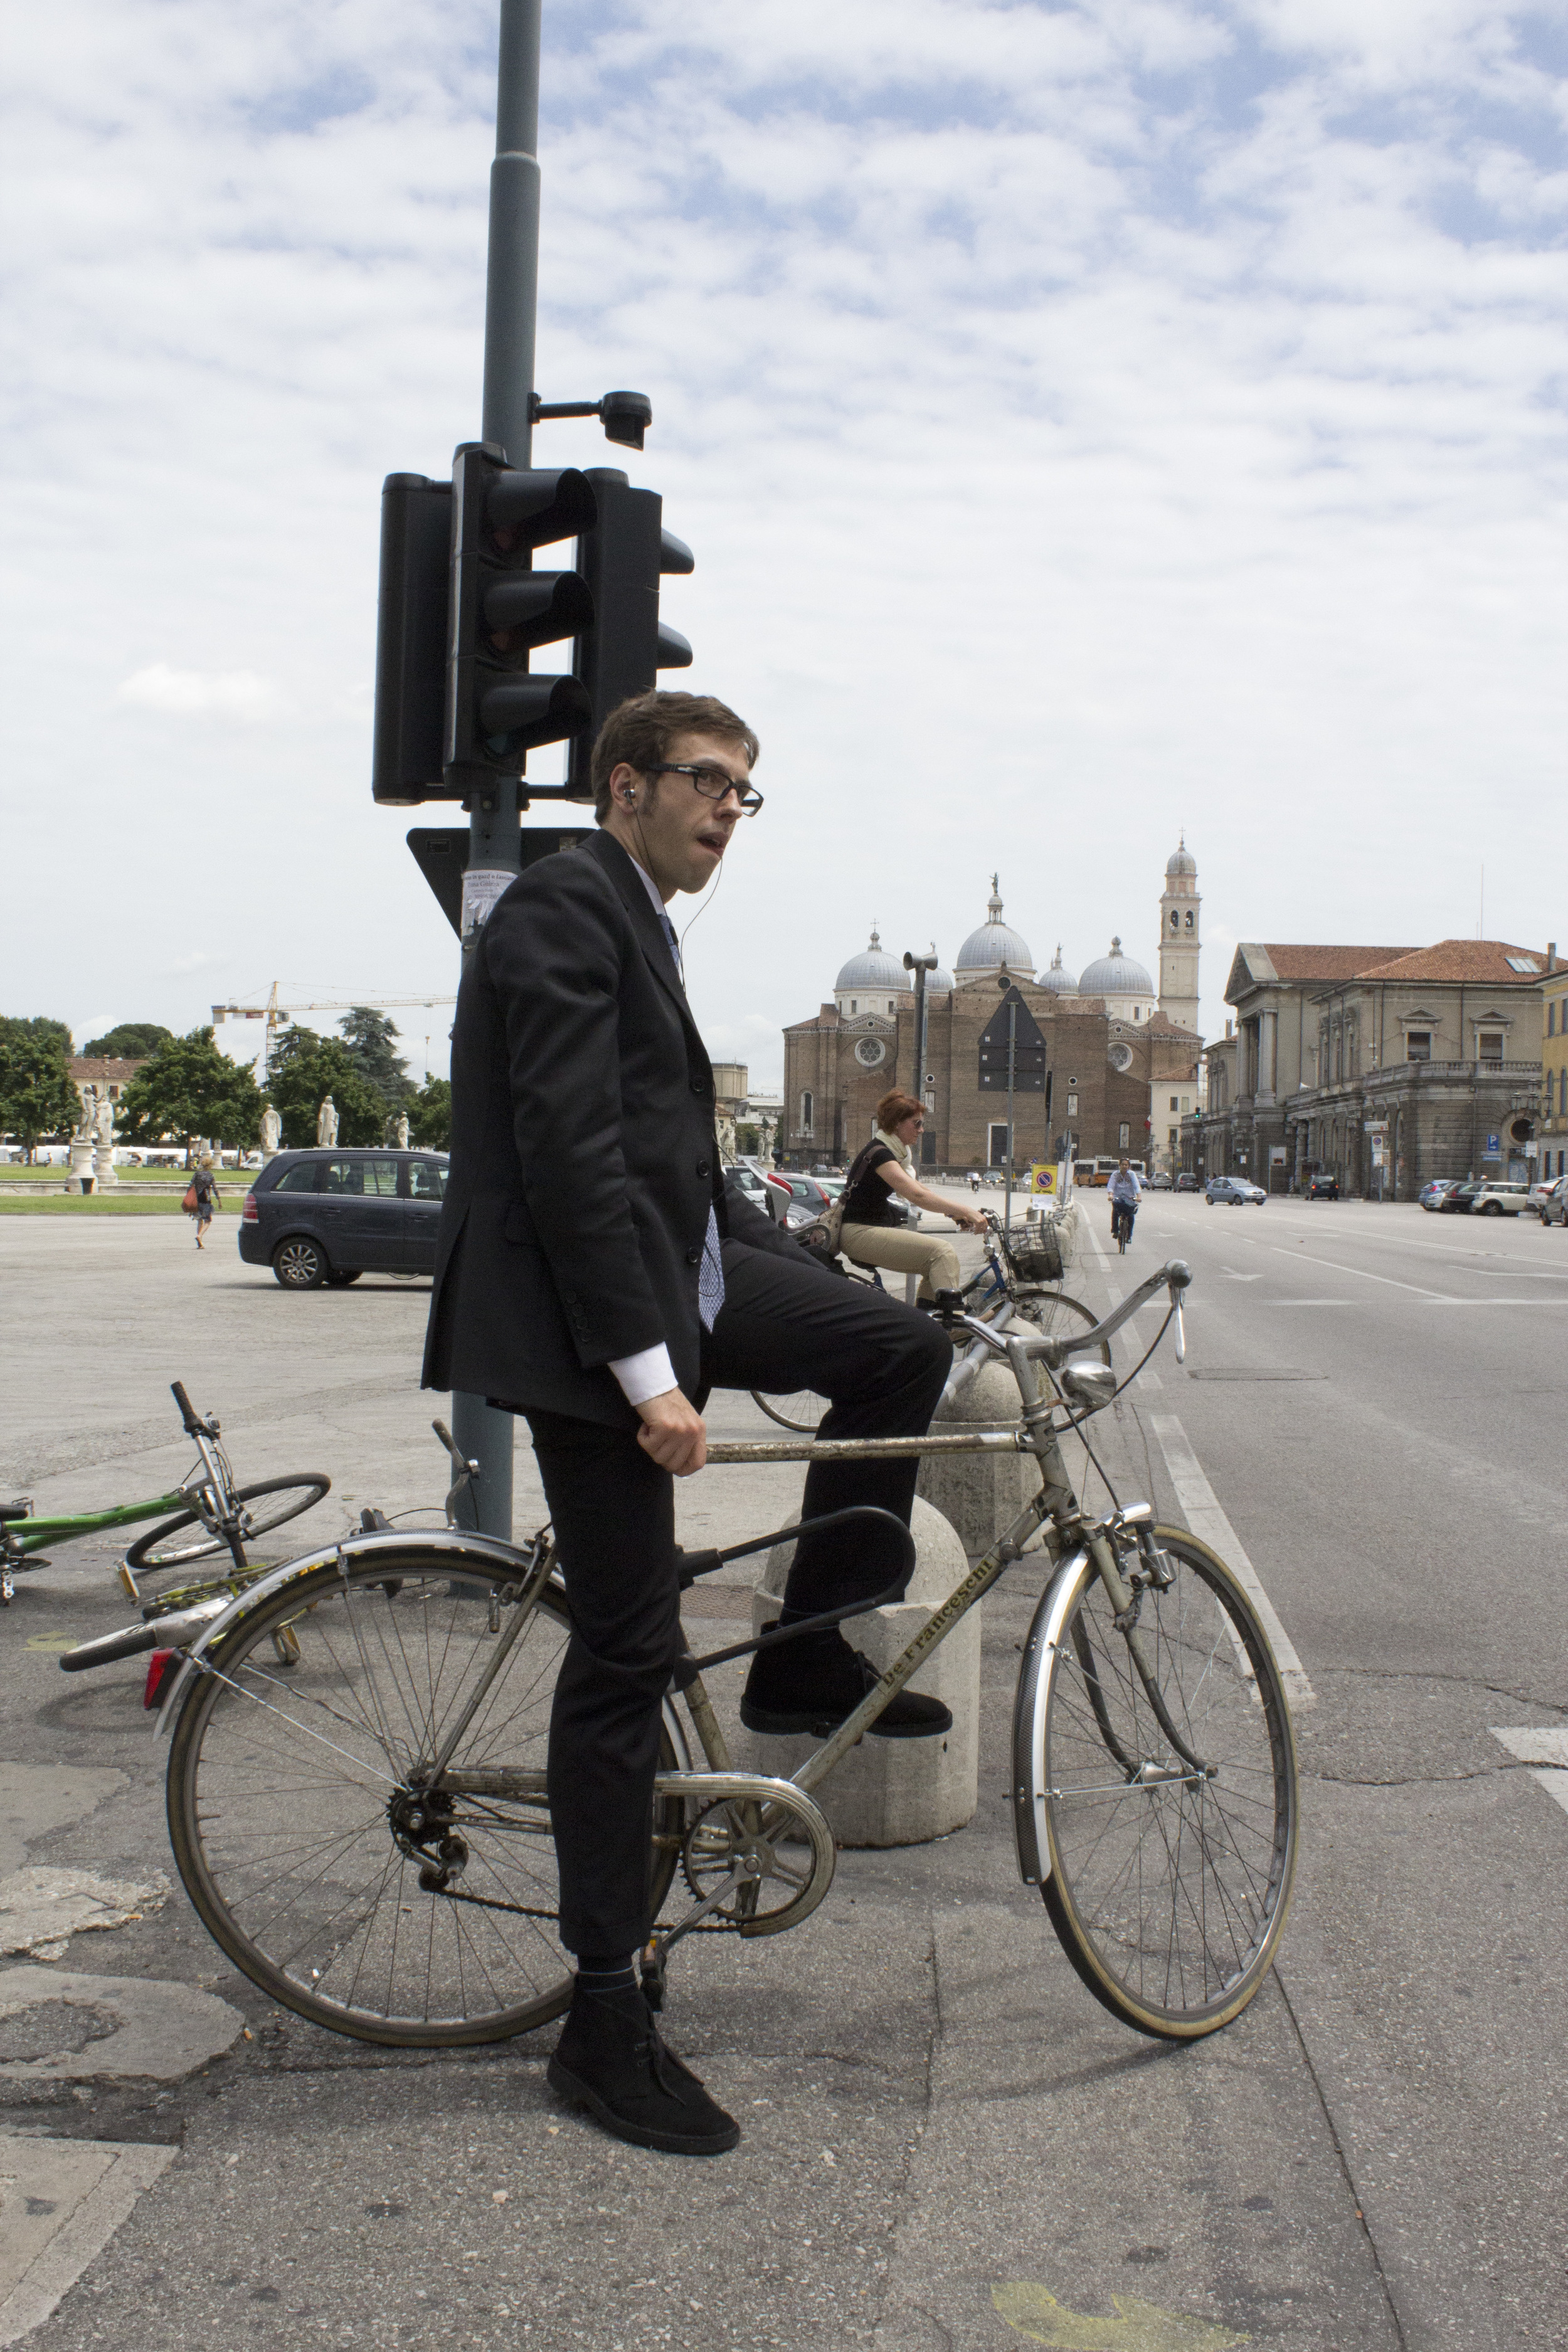 Man on Bike, Verano